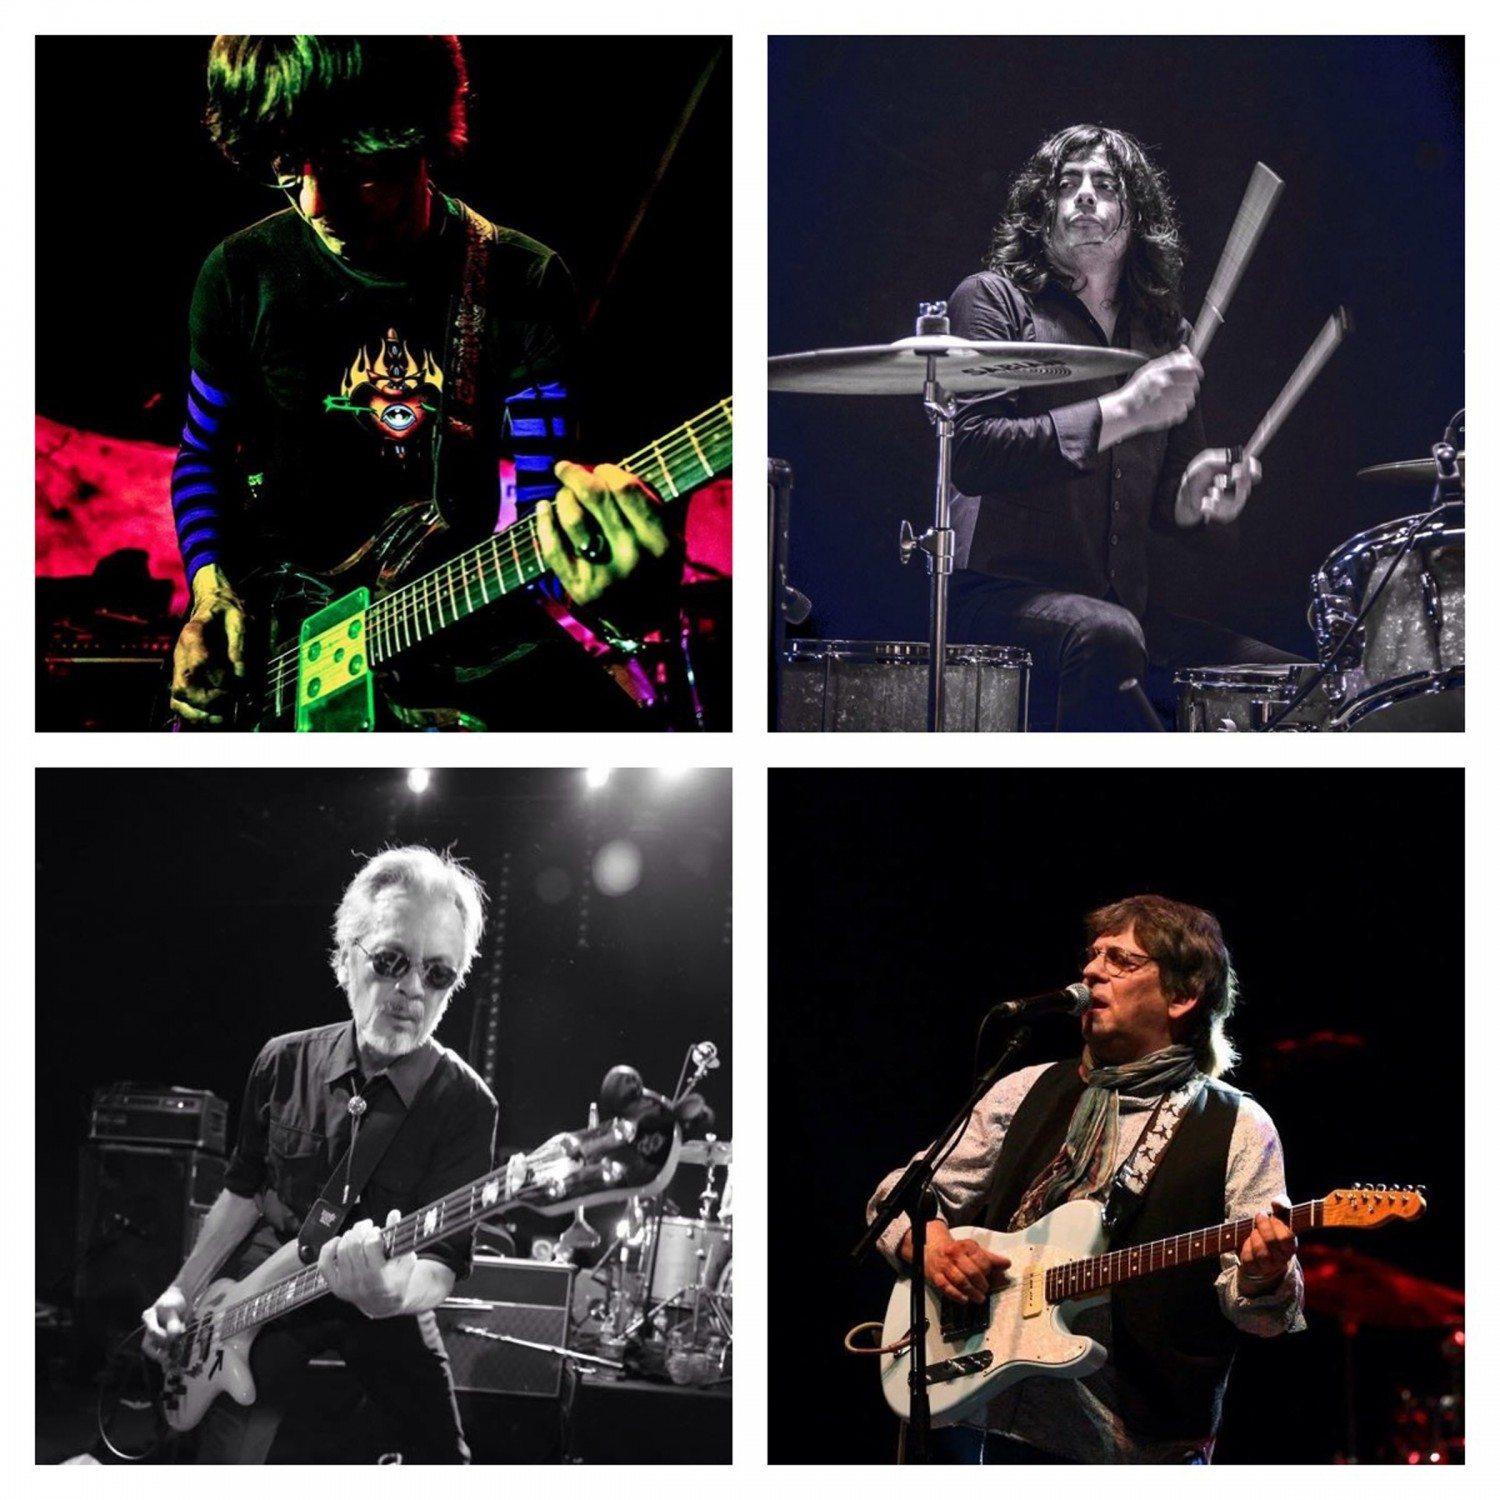 The Flamin' Groovies' Chris Wilson talks about the upcoming tour, album and documentary